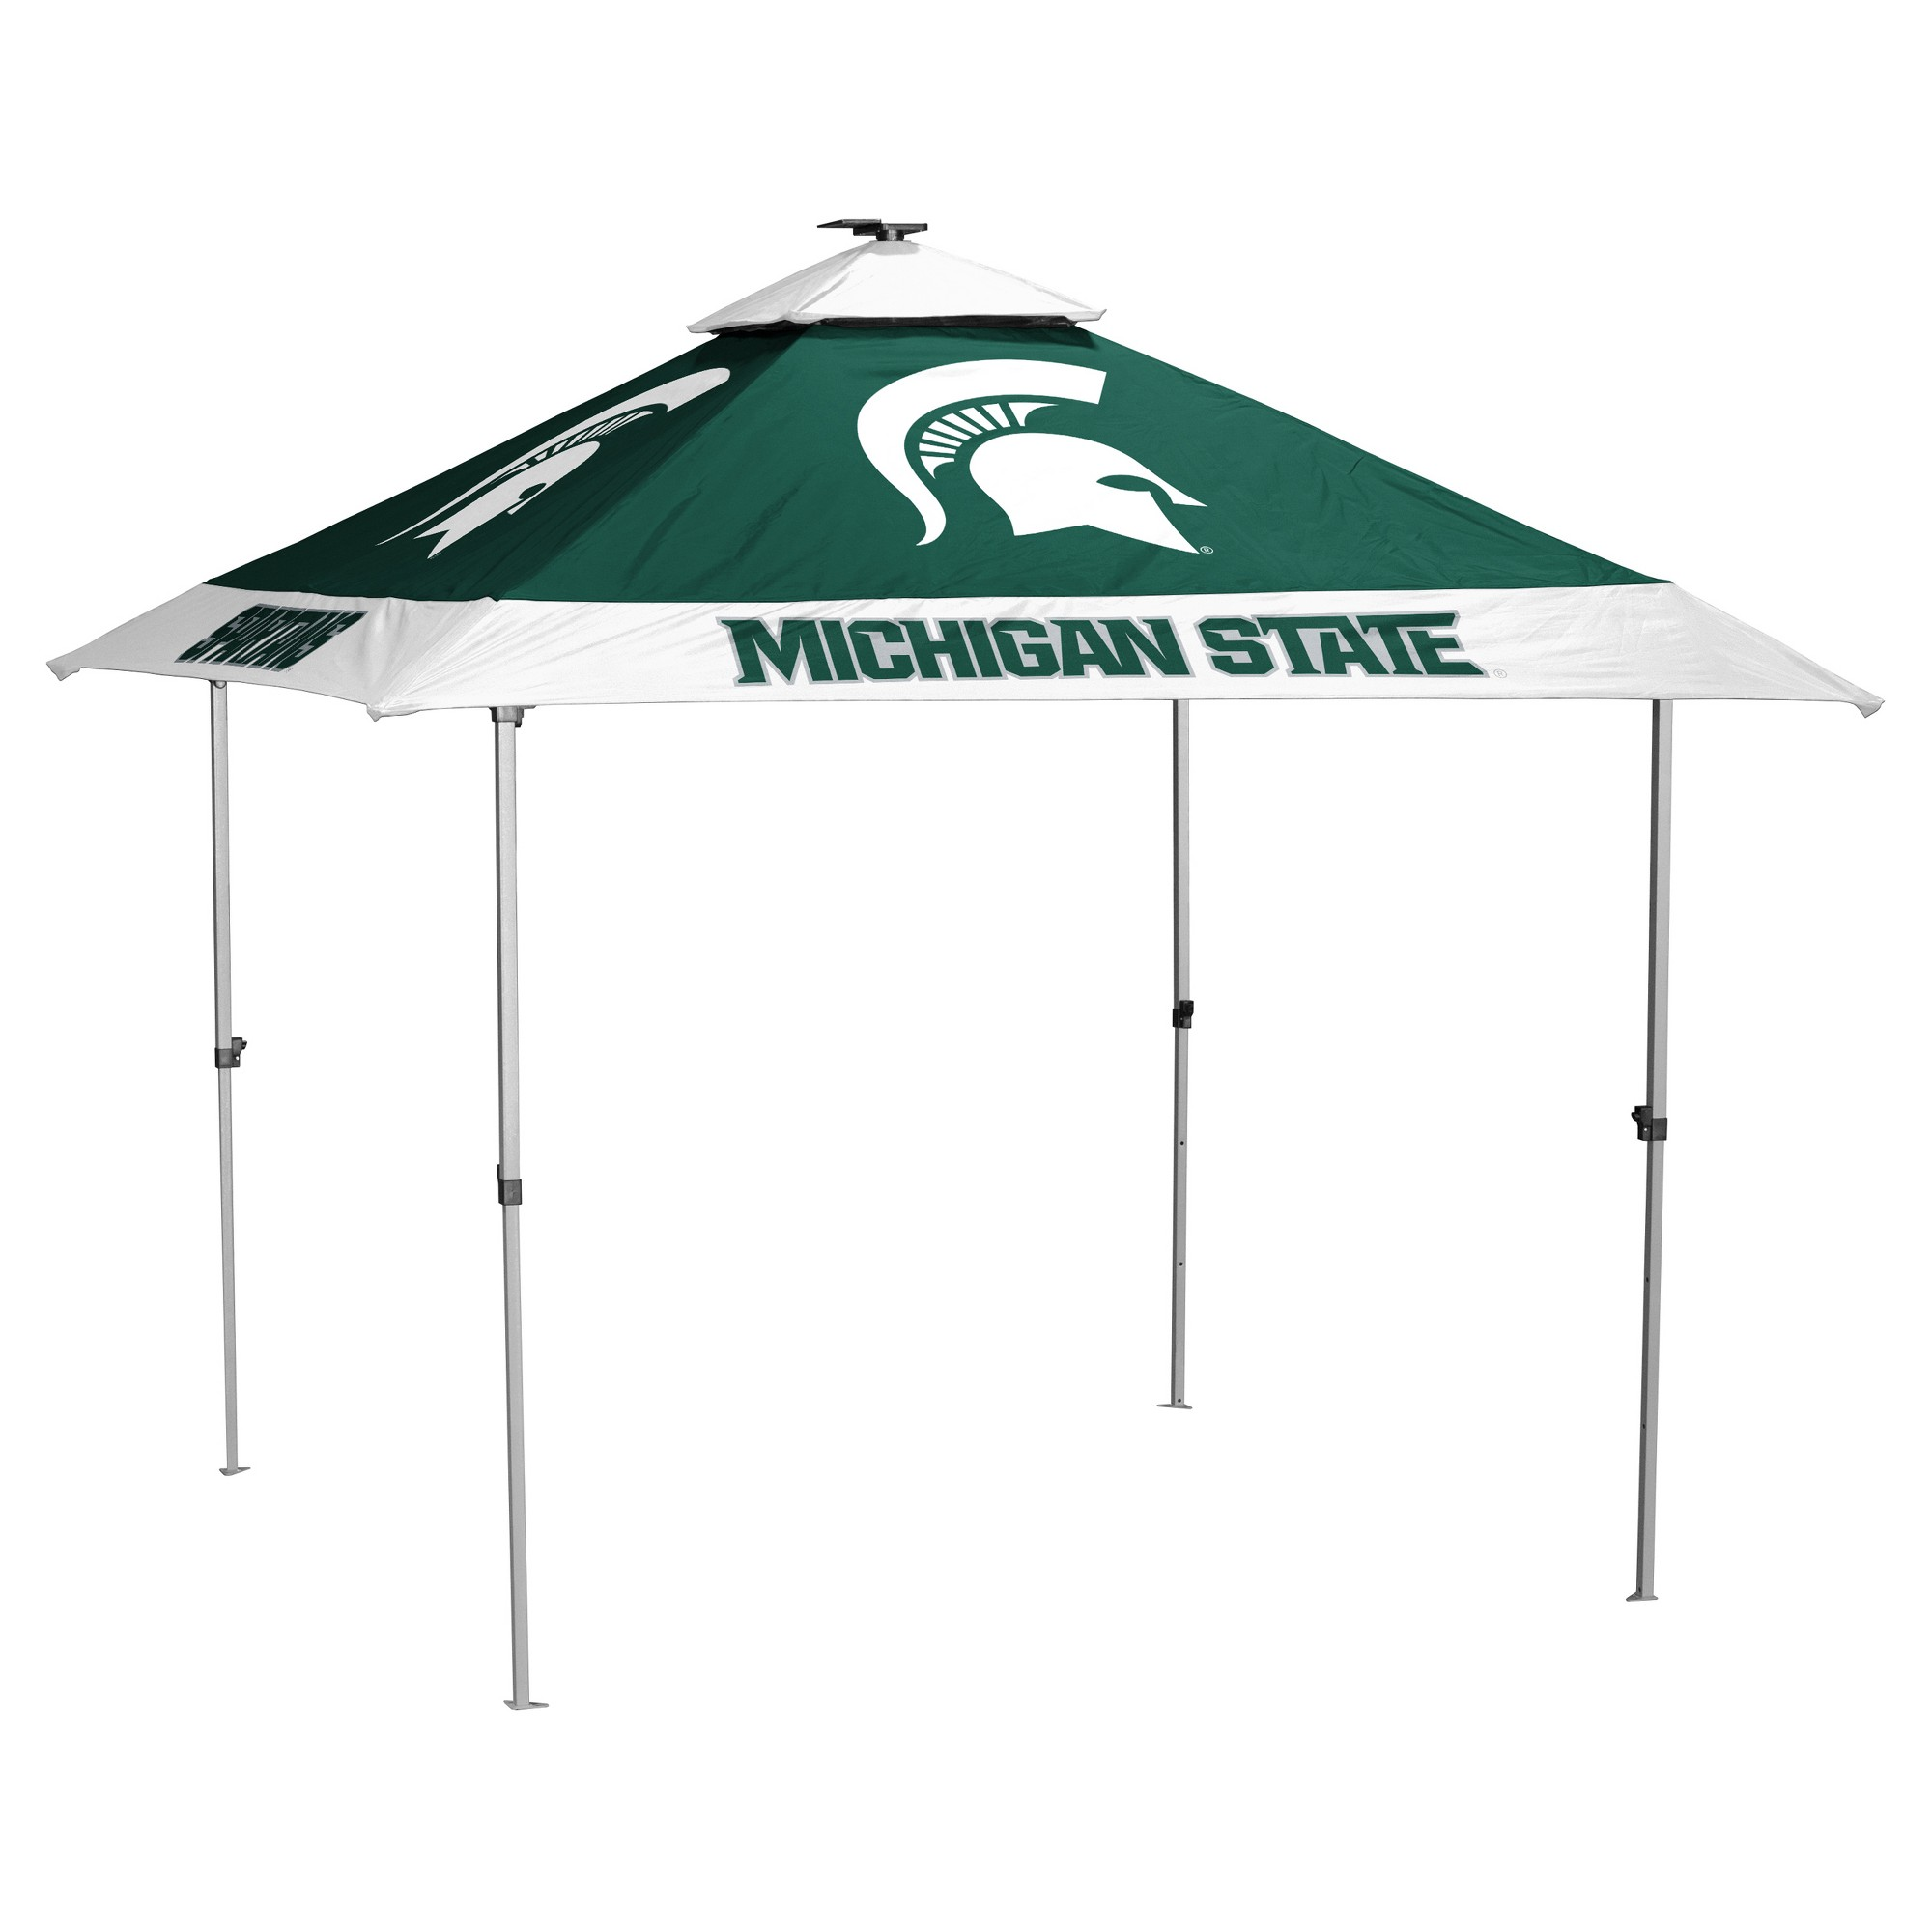 NCAA Michigan State Spartans Logo Brands Pagoda 10x10 Canopy Tent  sc 1 st  Pinterest & NCAA Michigan State Spartans Logo Brands Pagoda 10x10 Canopy Tent ...